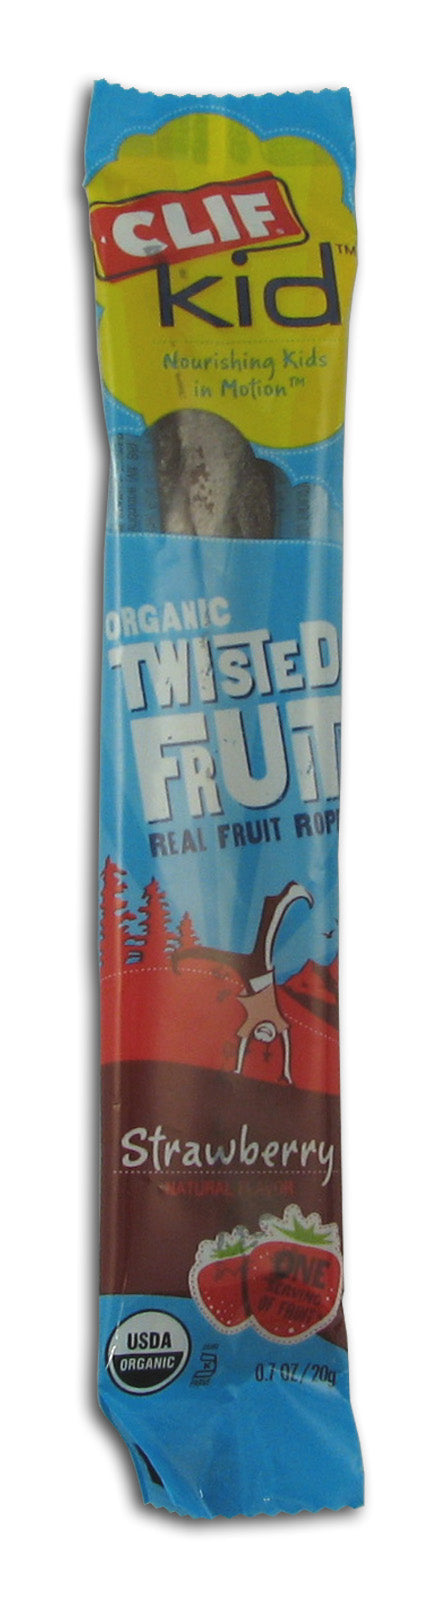 Twisted Fruit, Strawberry, Organic